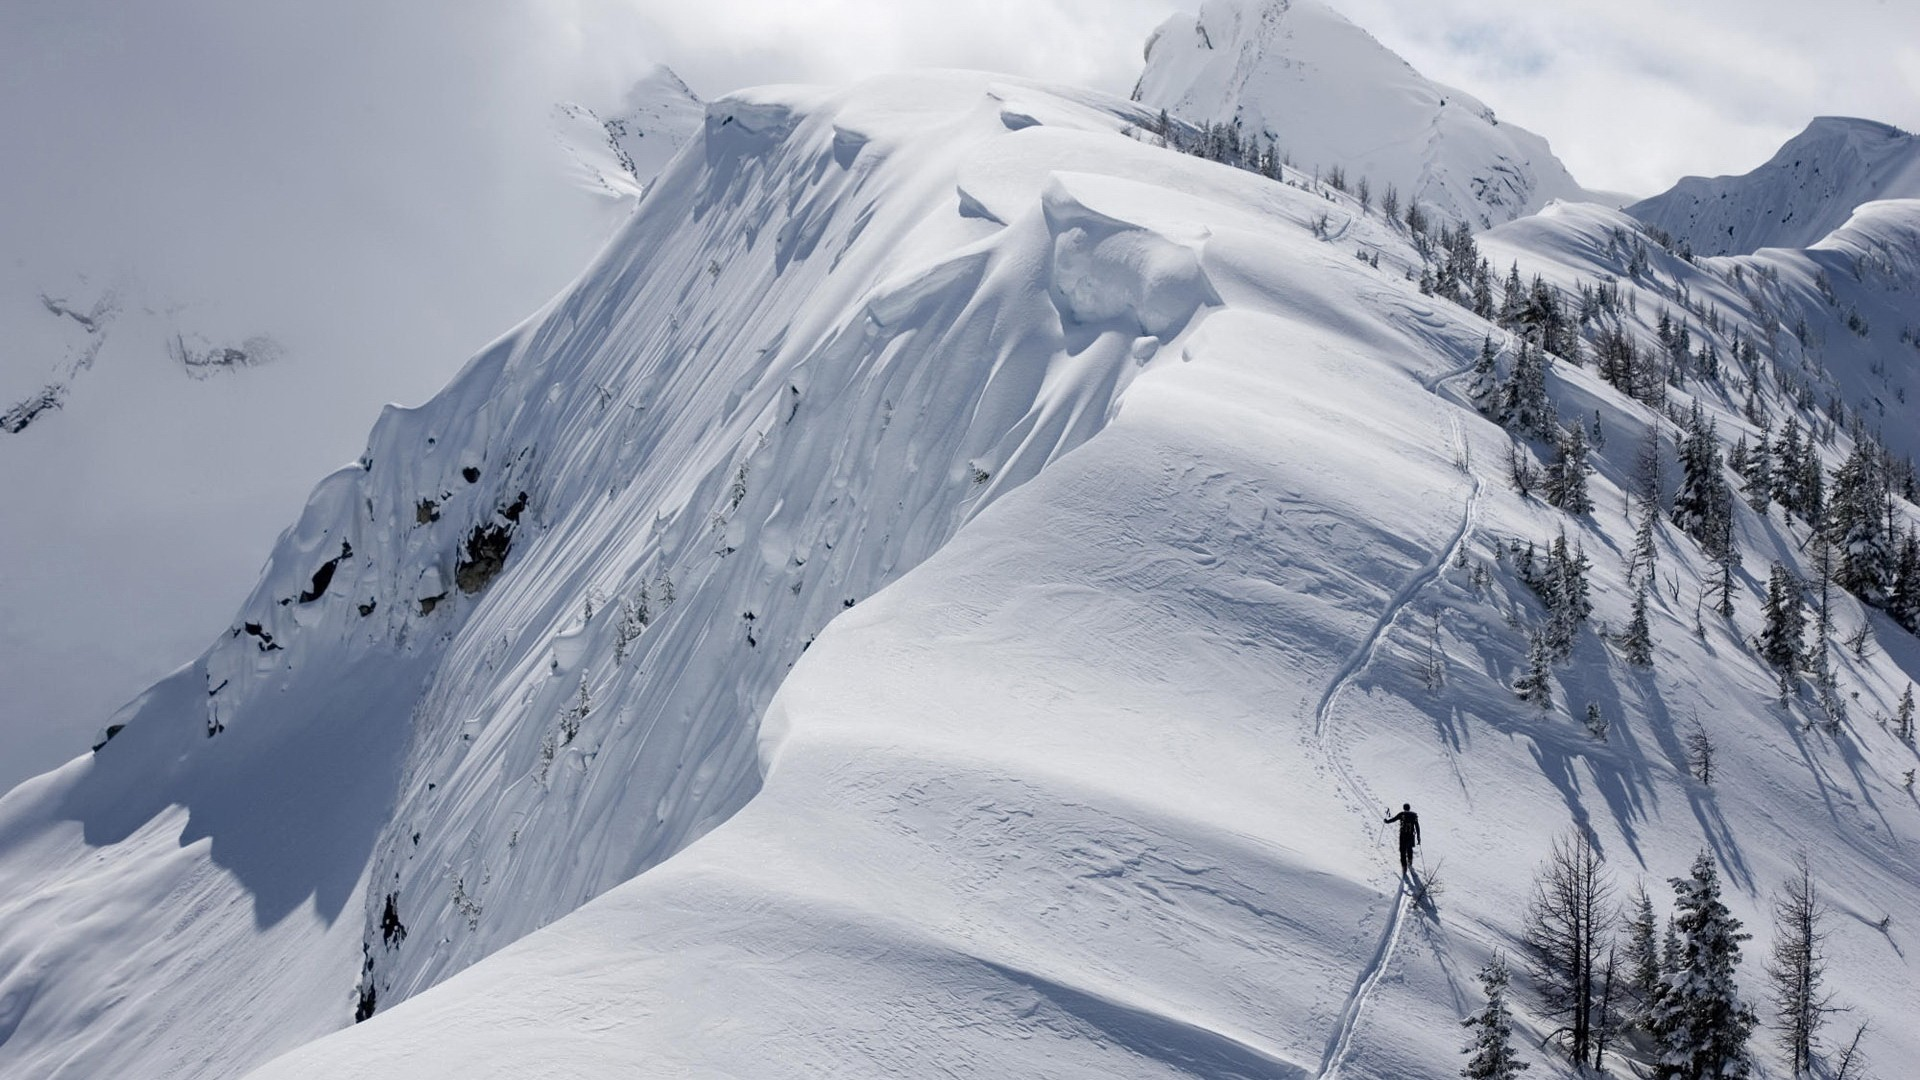 Skiers on snowy mountainside